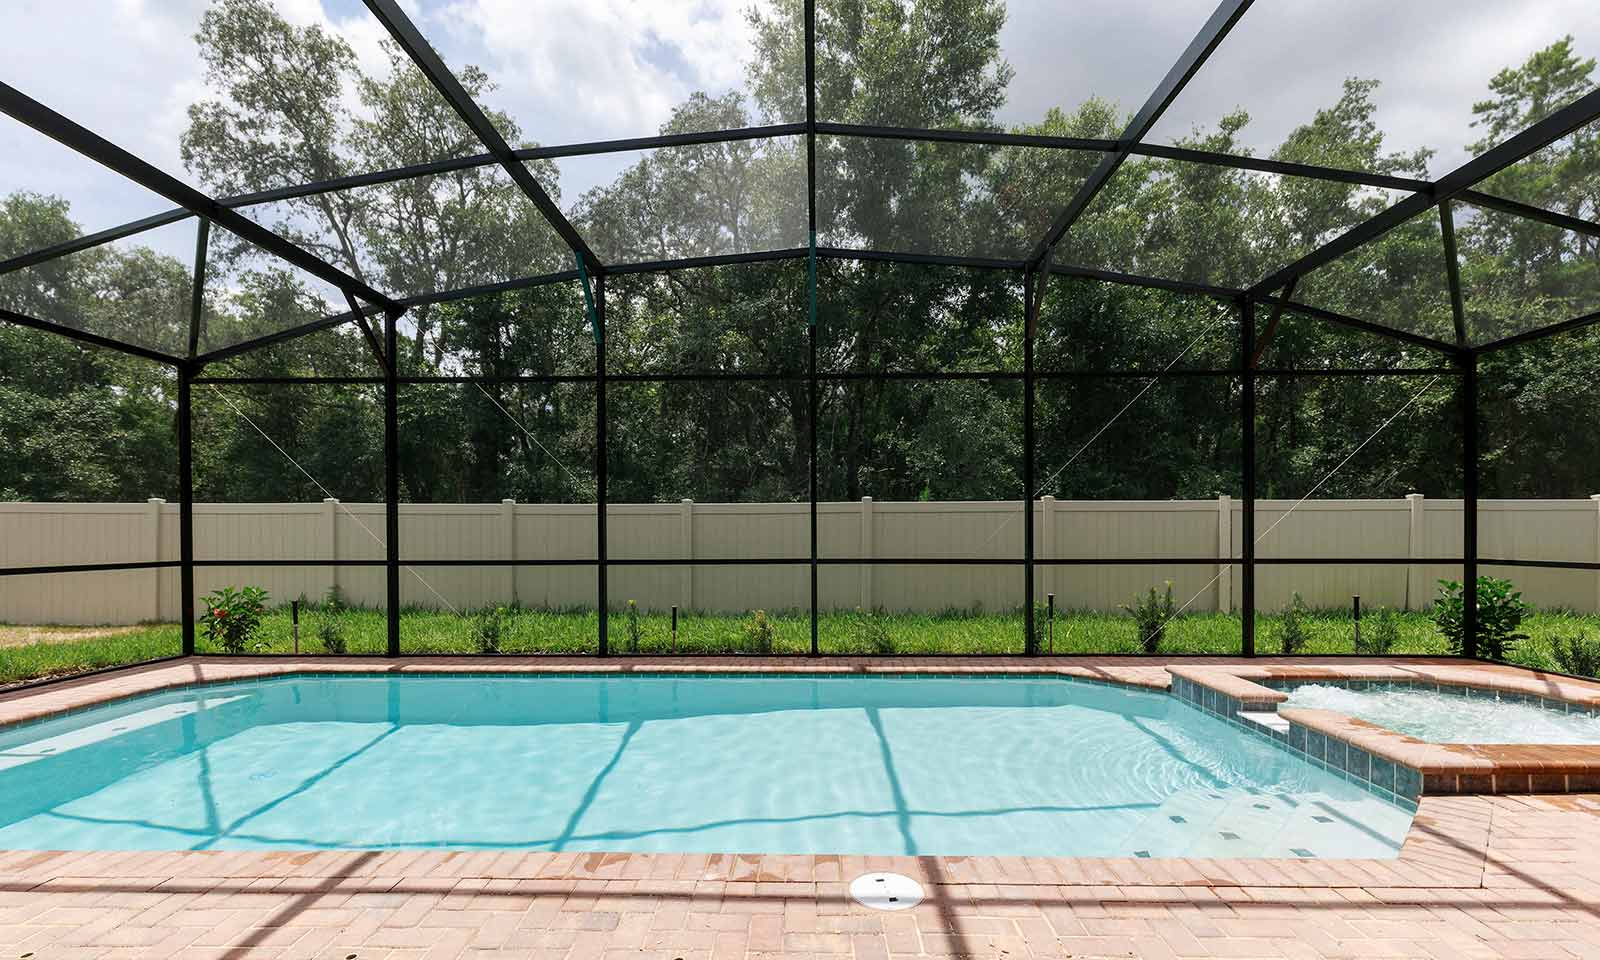 [amenities:screened-in-pool:3] Screened In Pool